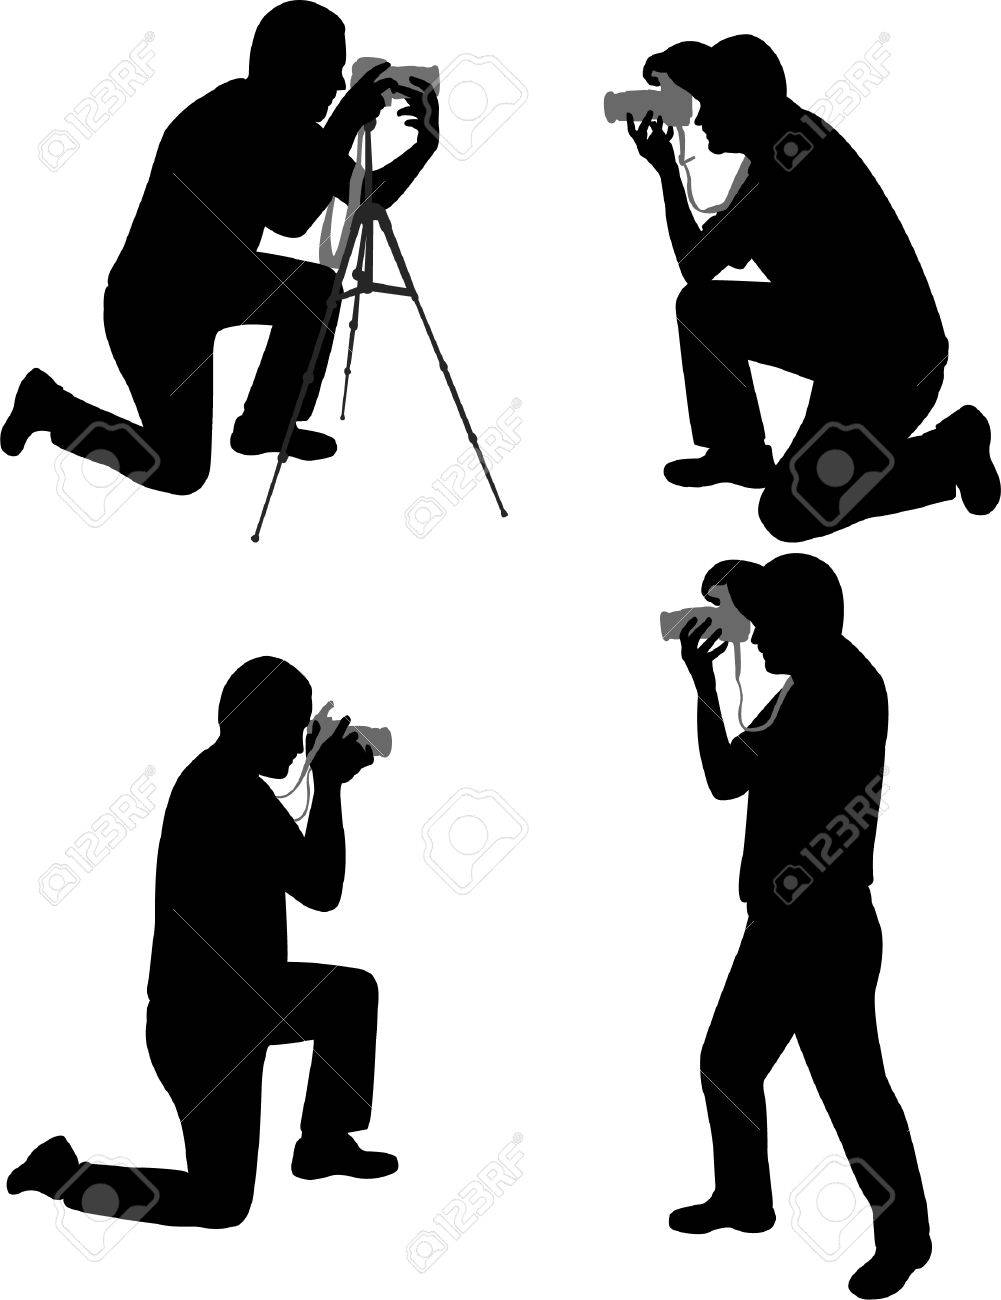 Photographers Silhouettes - Vector Royalty Free Cliparts, Vectors ...